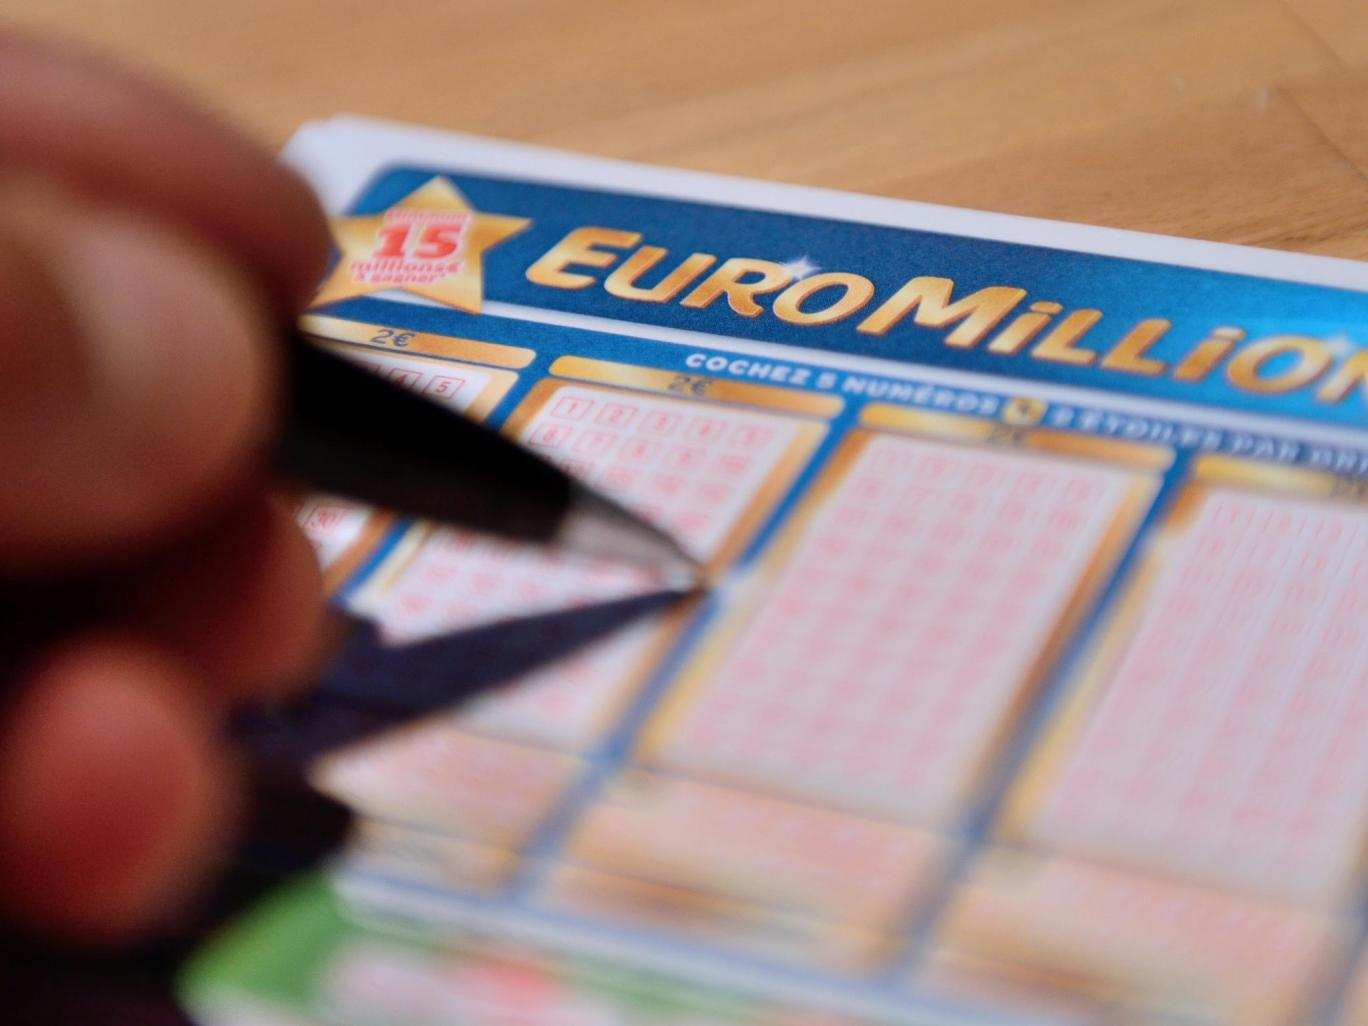 Buy euromillions tickets and more online – right here